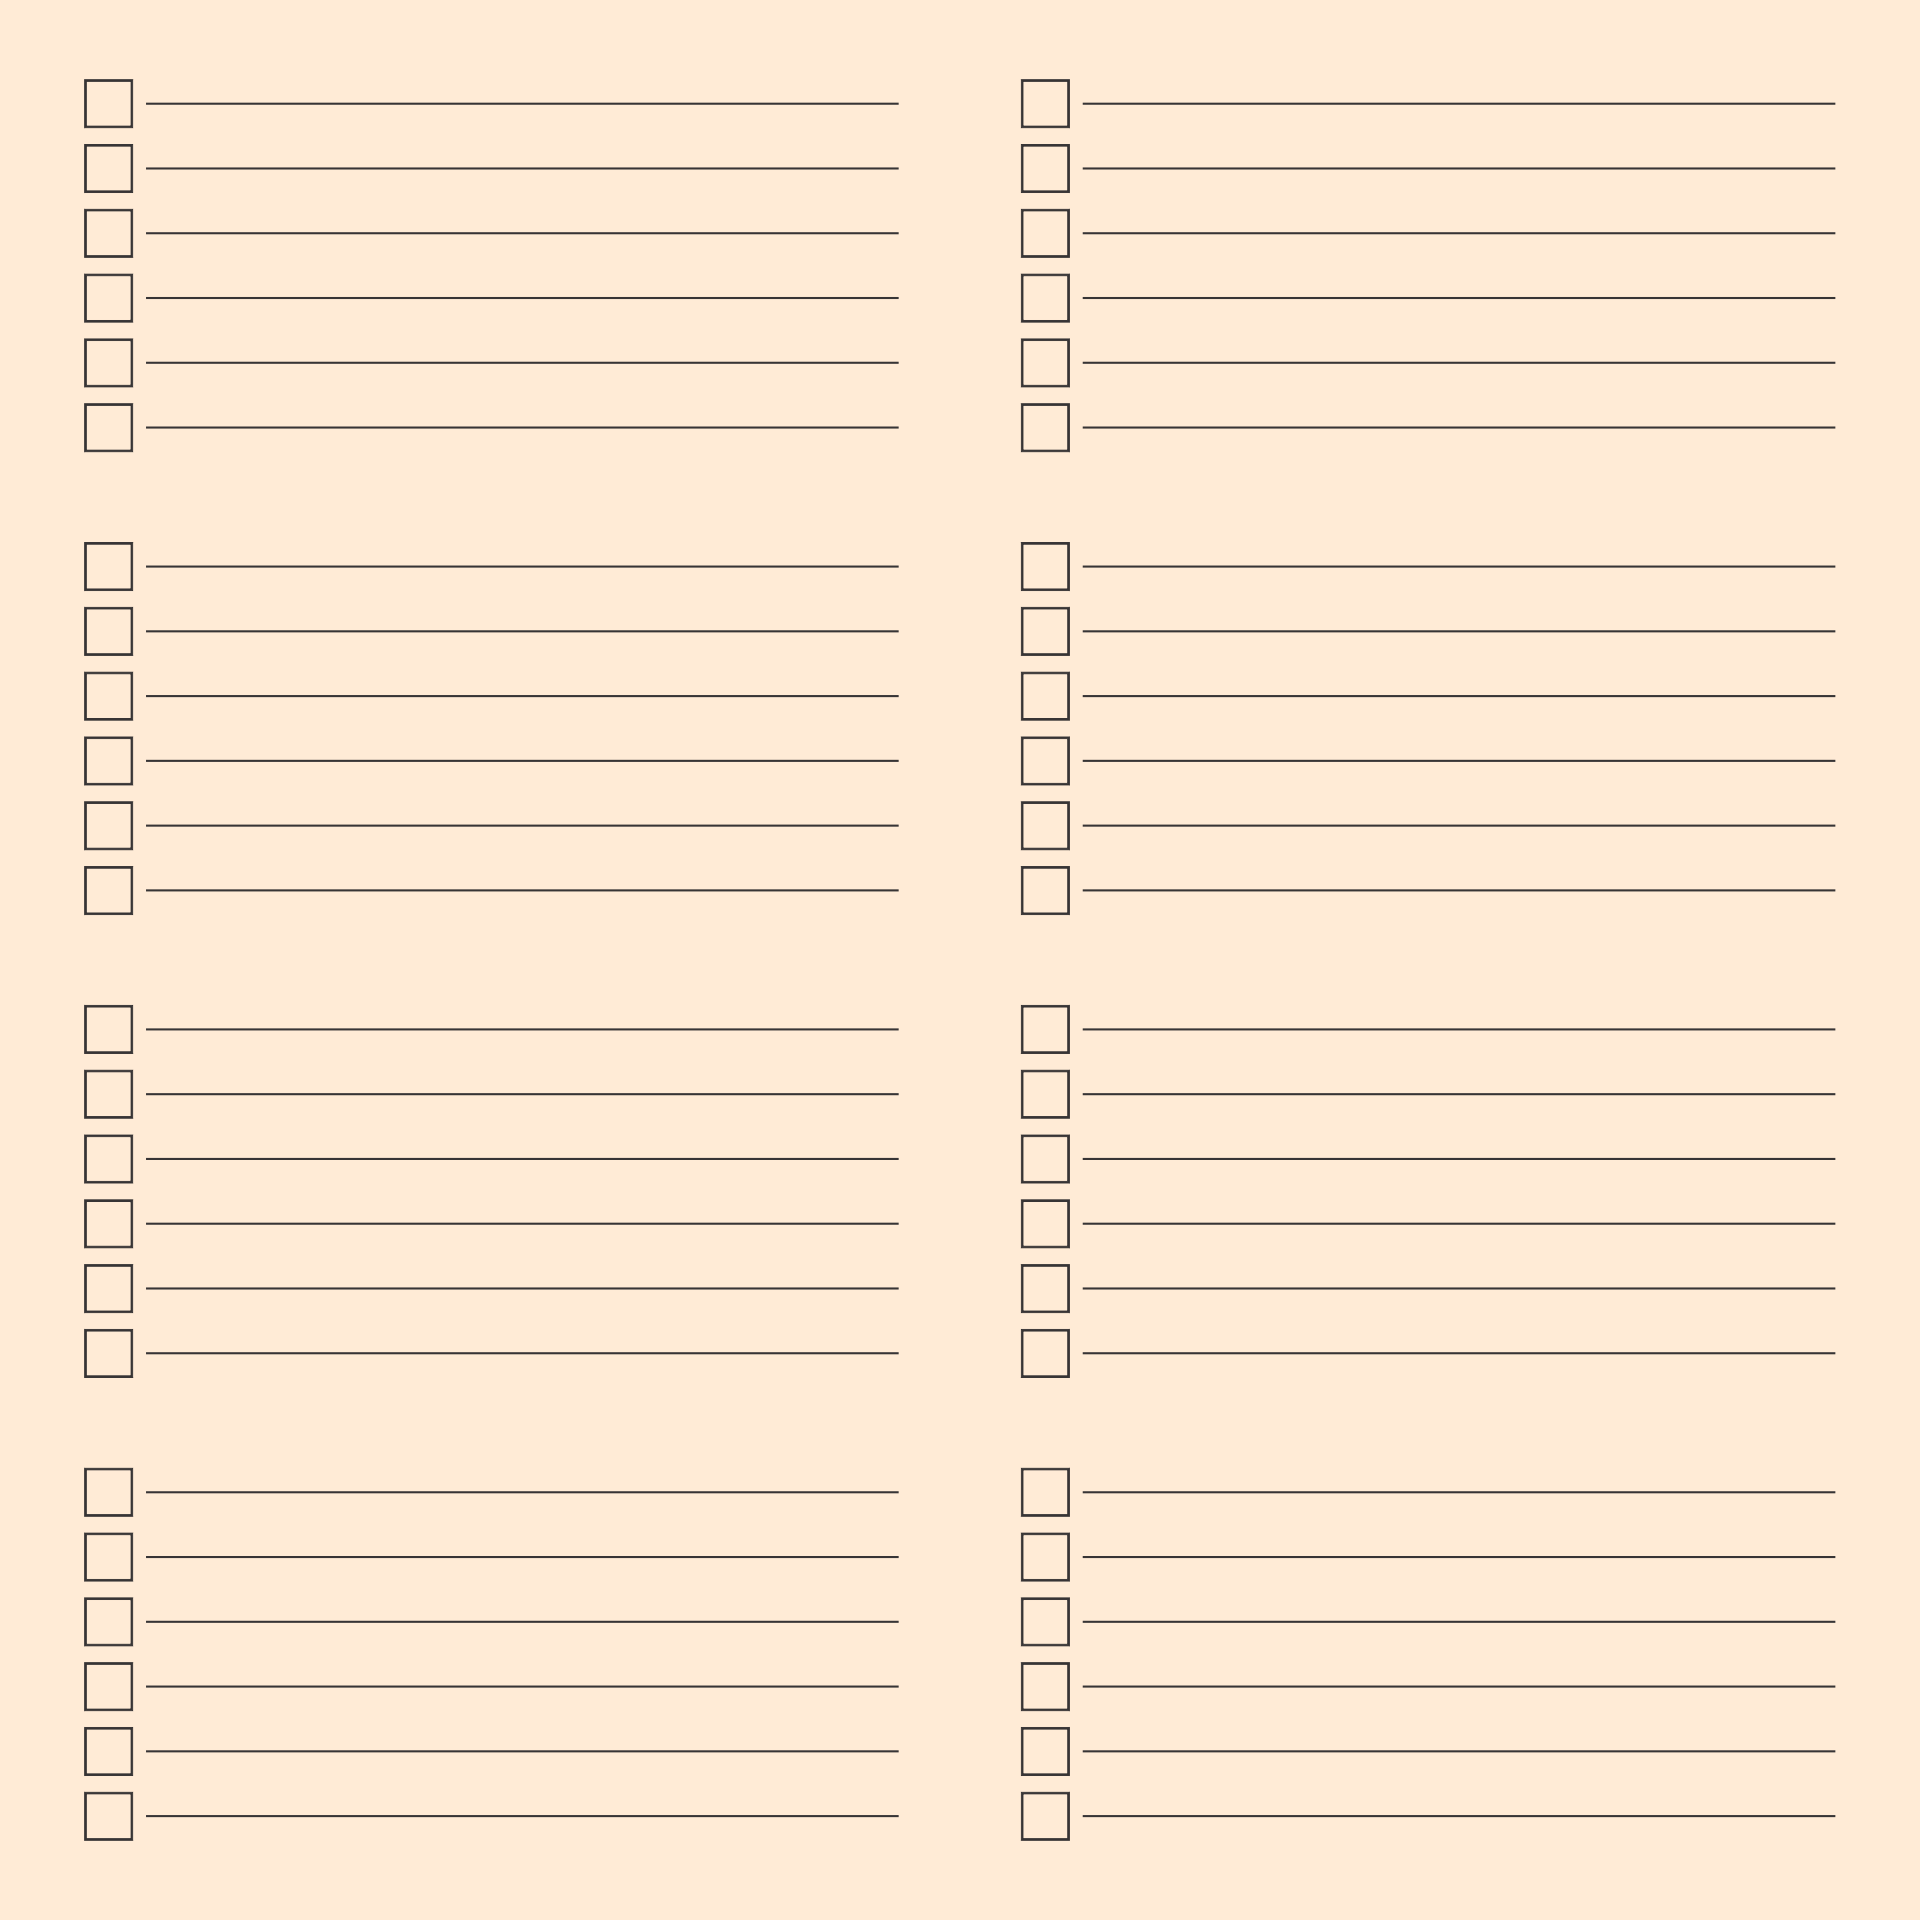 Editable Blank Printable Checklists